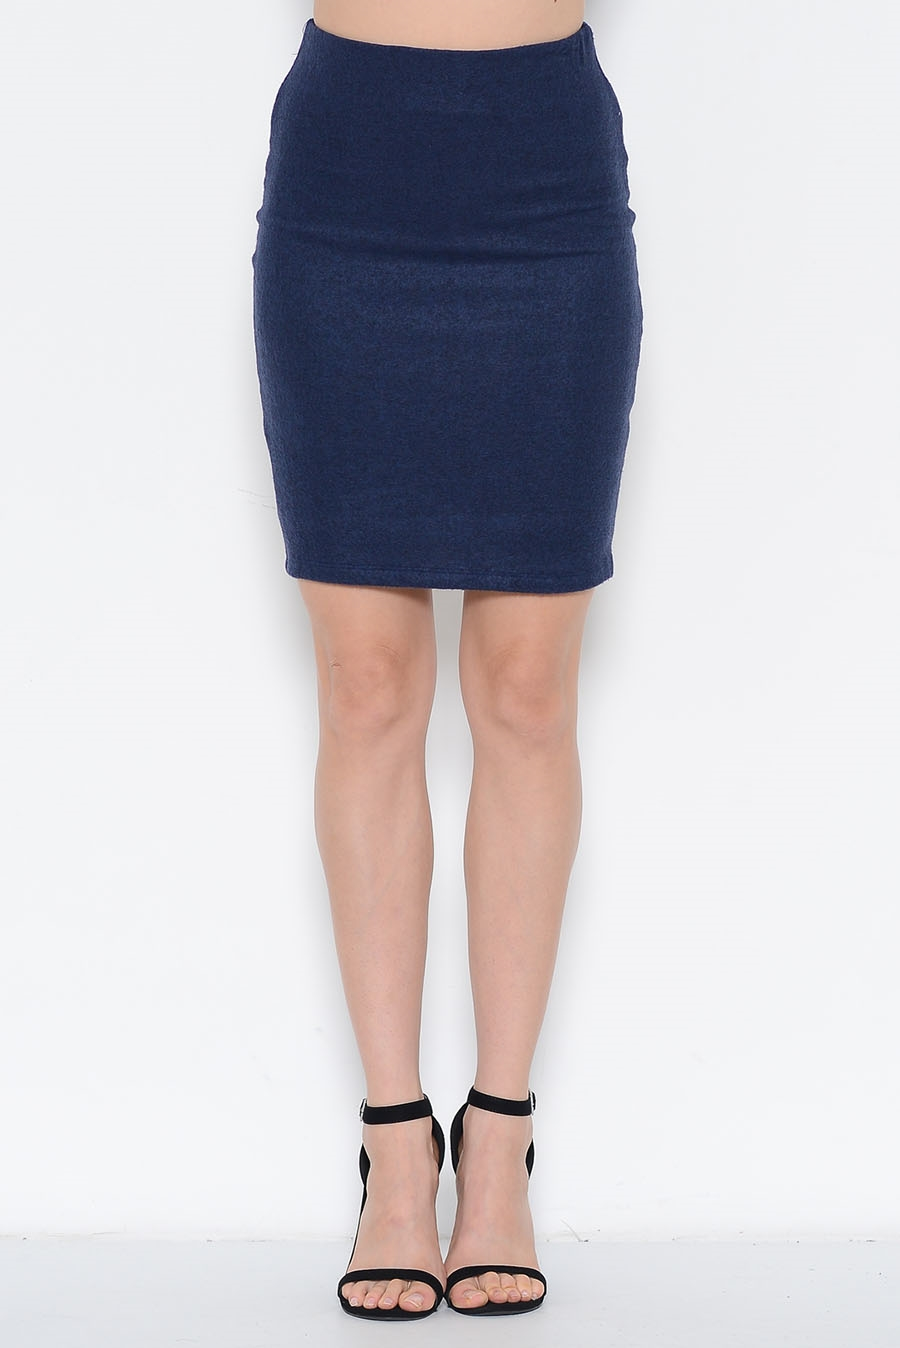 BRUSHED FITTED SKIRT - orangeshine.com